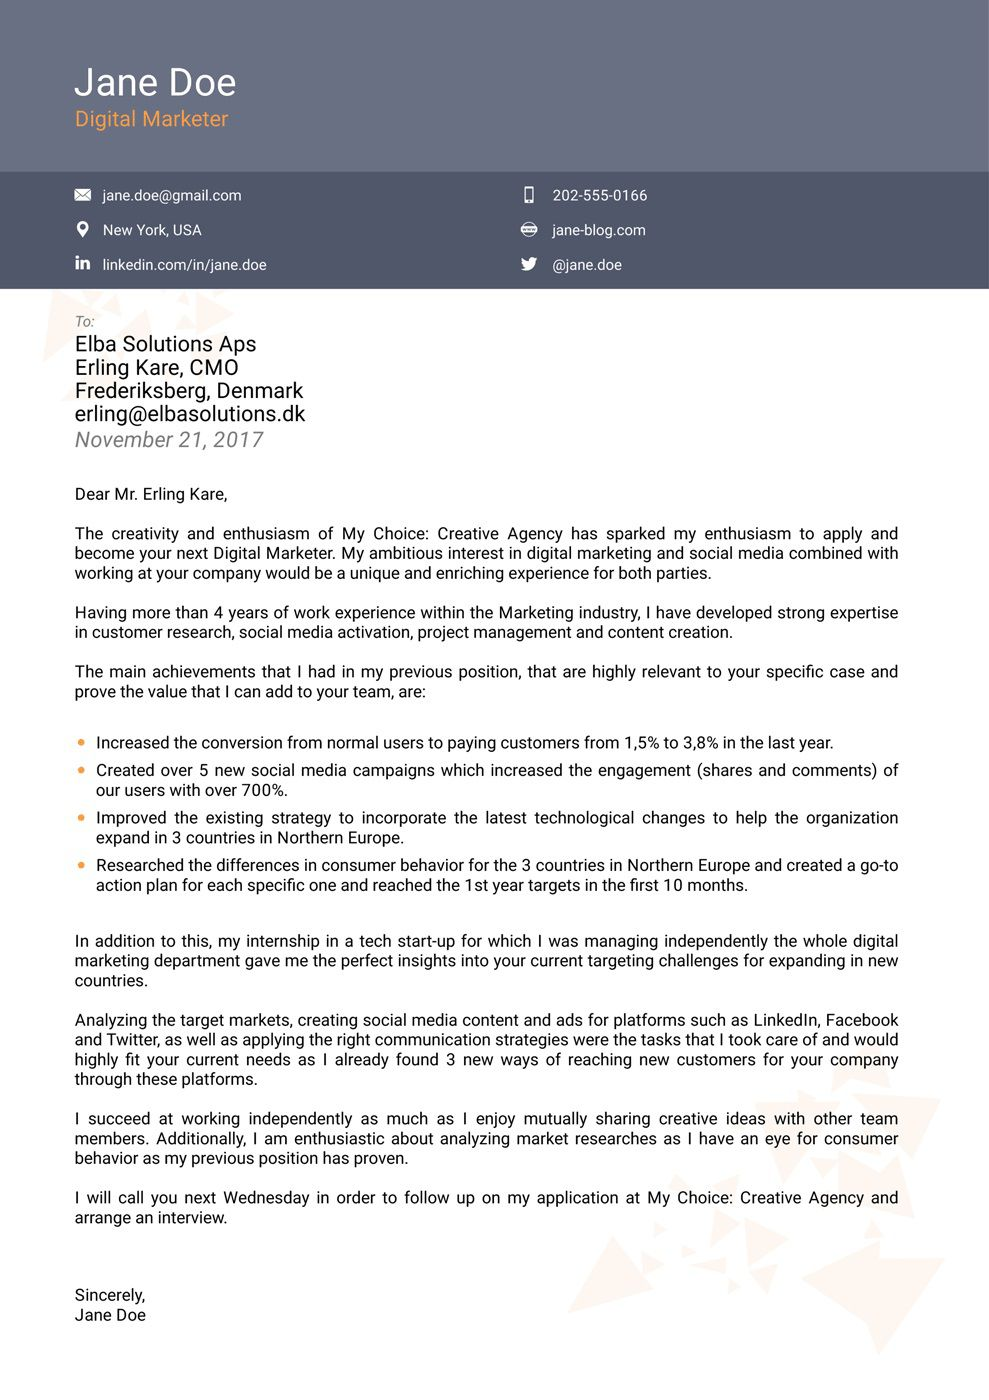 005 Excellent Download Cover Letter Template Example  Templates Free Microsoft WordFull